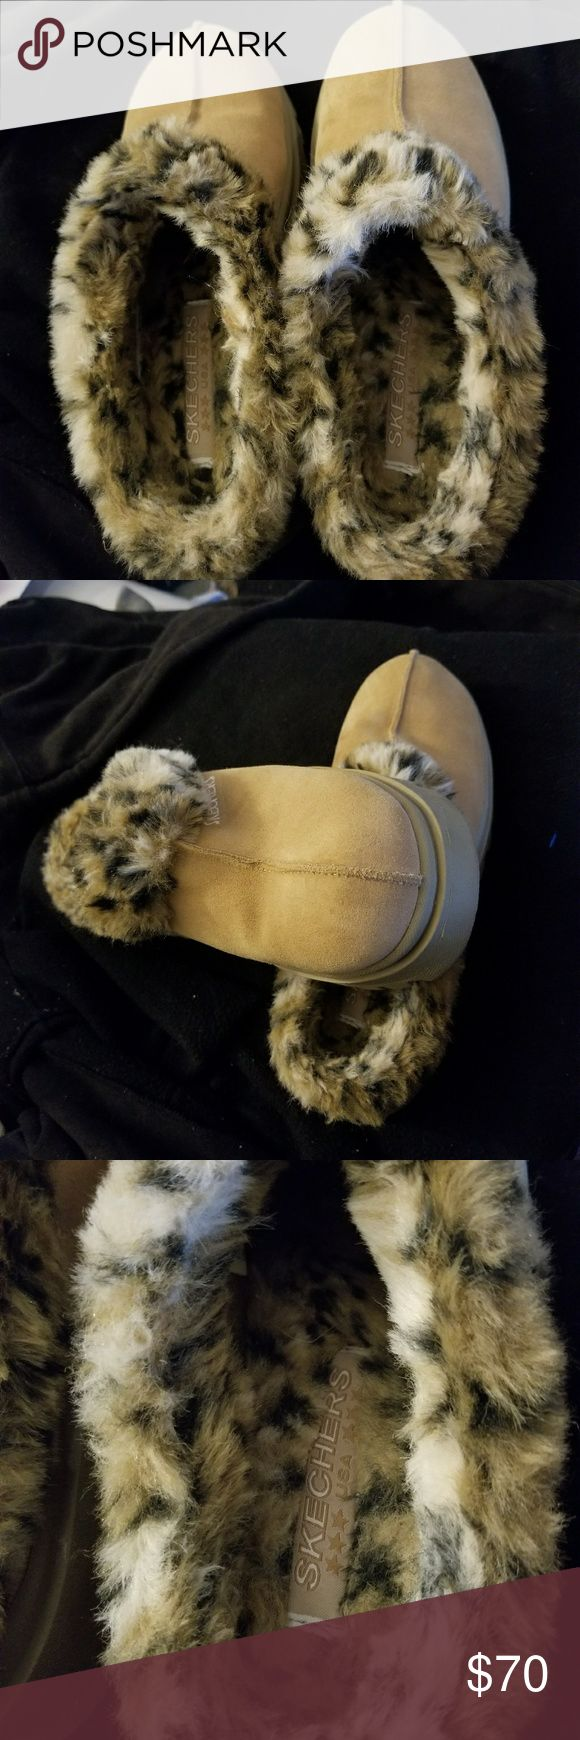 NWOT SKECHERS SLIP ON SHOES SKECHERS FAUX FUR LEOPARD SLIP ON SHOES VERY WARM AND COMFORTABLE  BOUGHT WORN ONCE TO TIGHT FOR ME MY LOSS YOUR GAIN VERY BEAUTIFUL NO SCUFFS RIPS TEARS OR STAINS SIZE 9       9/10 sketchers Shoes Flats & Loafers